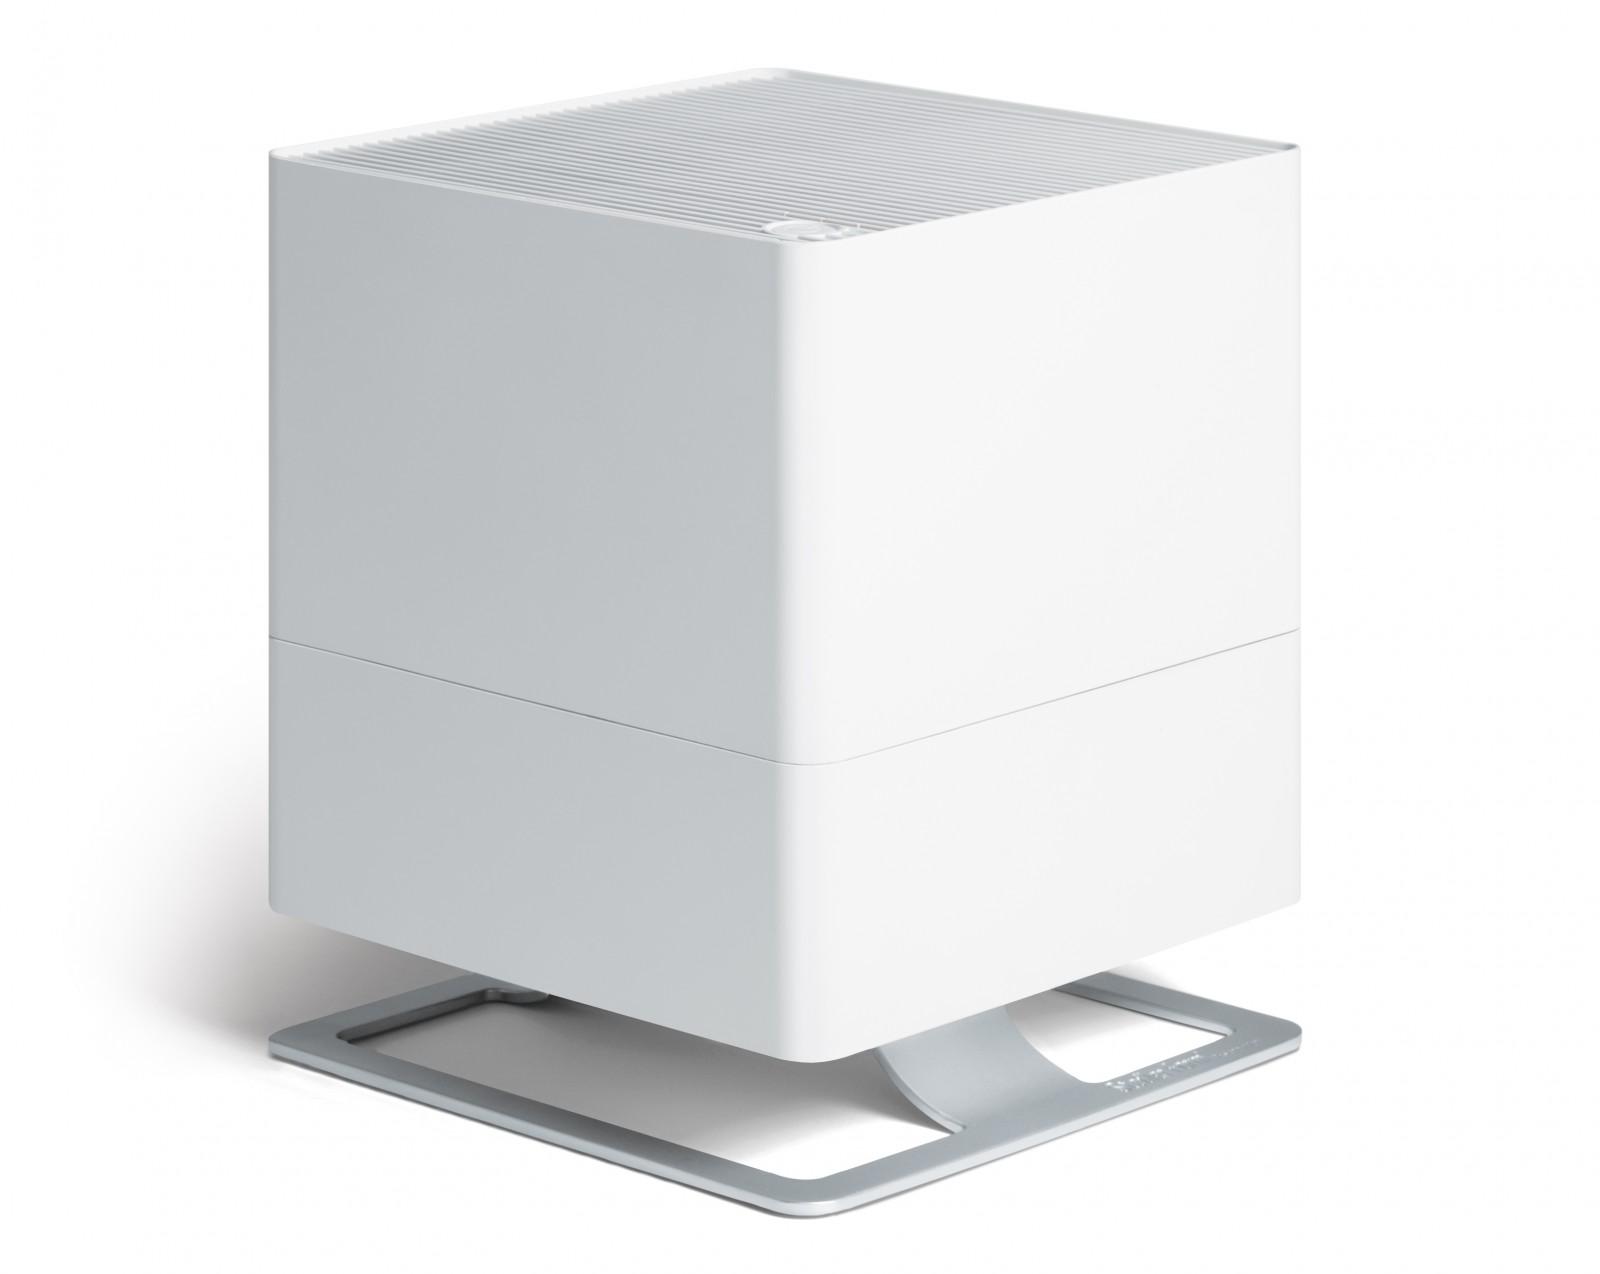 Humidifier Oskar in white up to 50 m ² Room size Humidification  #5F676C